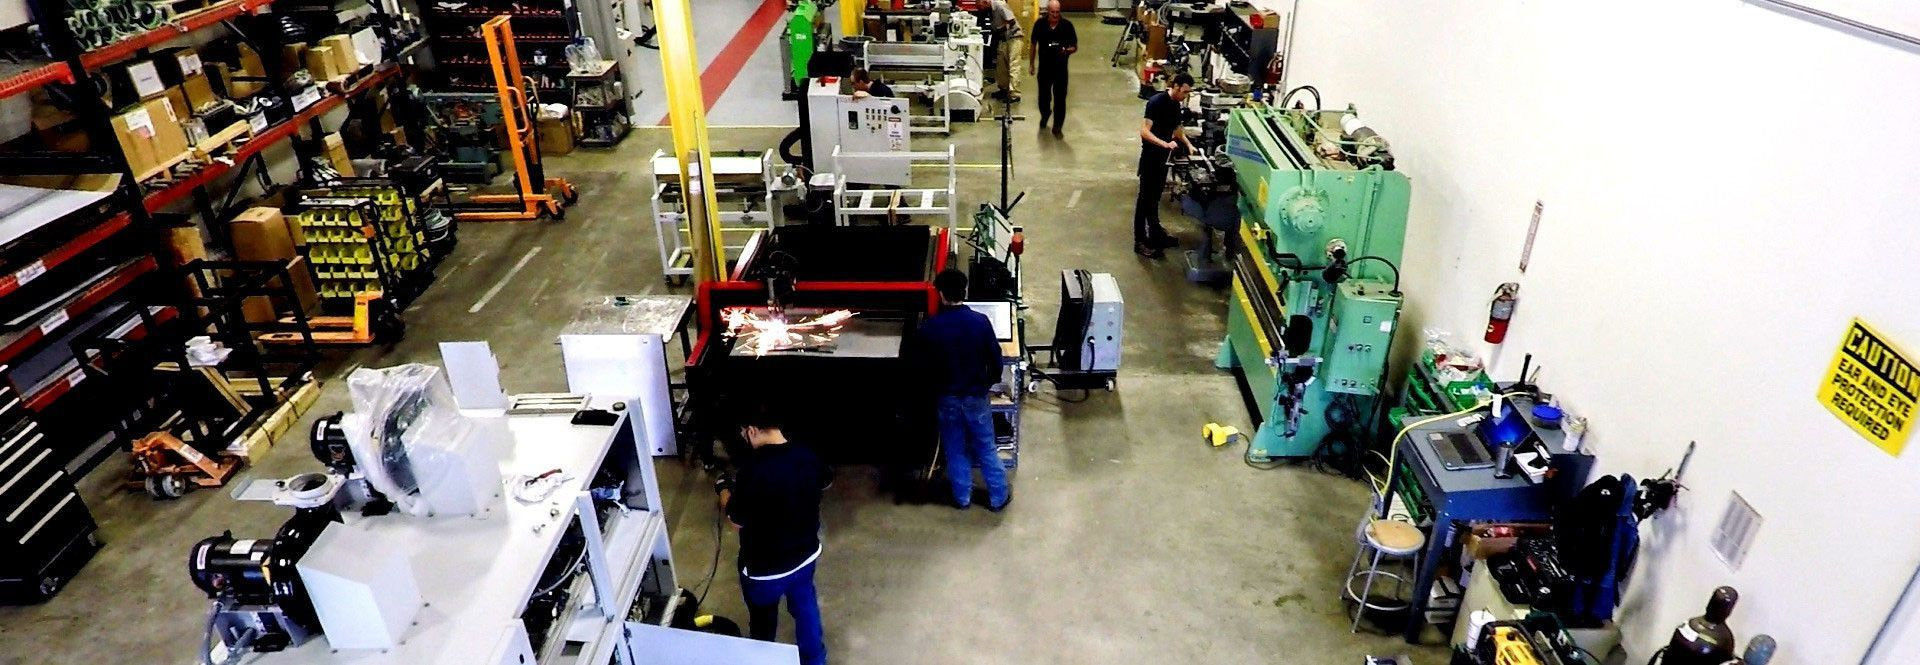 Finishing Systems in Factory